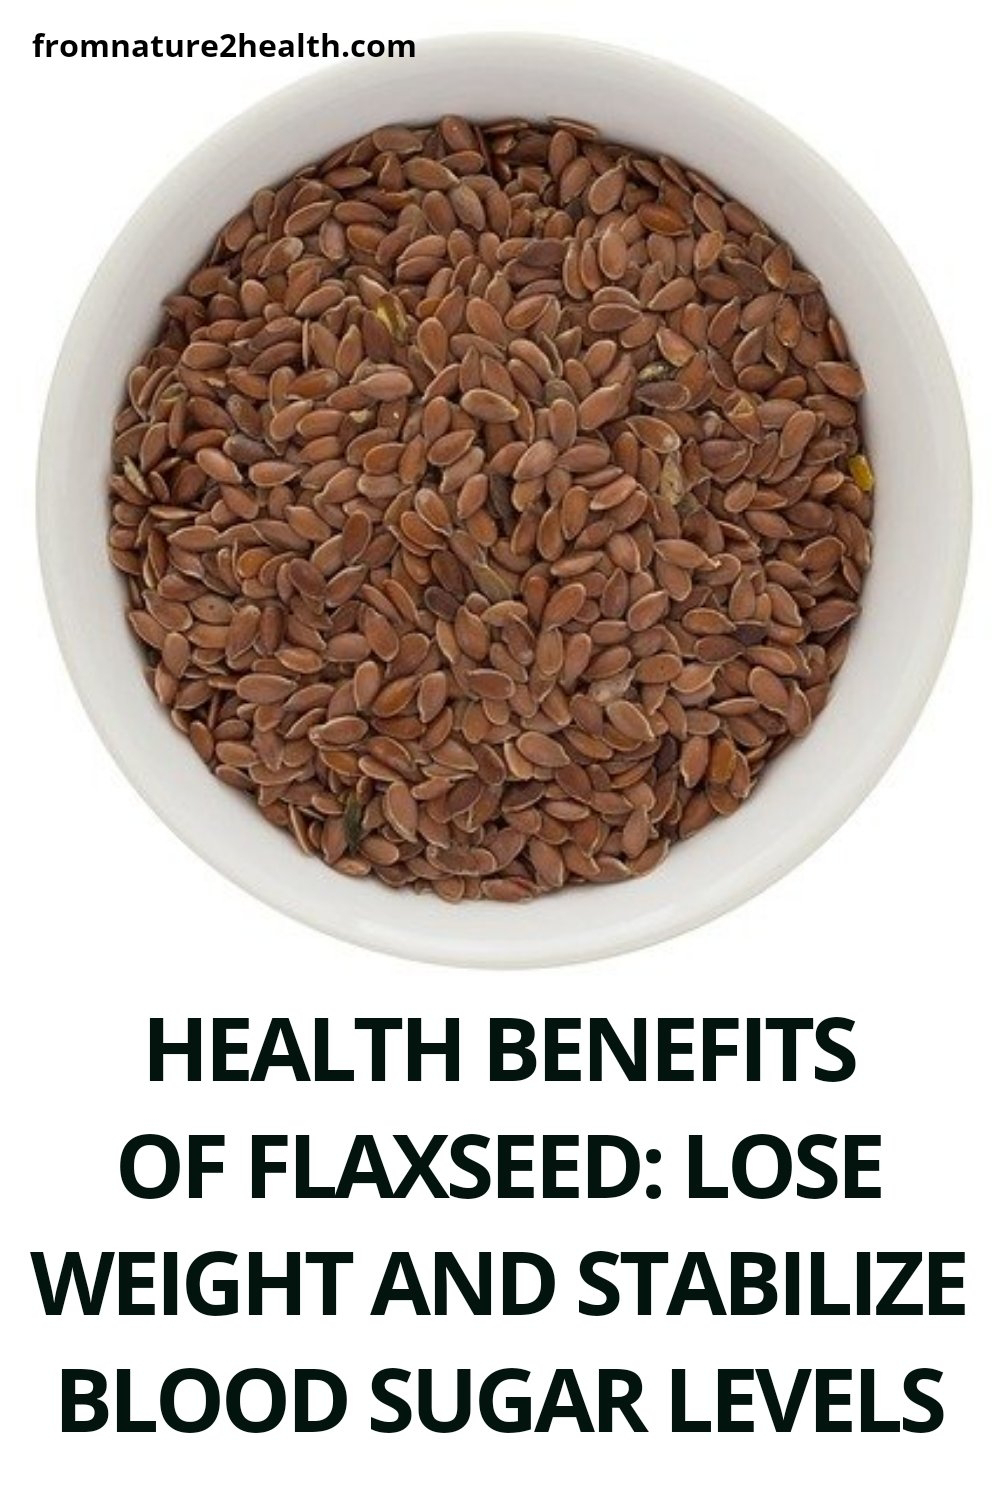 Health Benefits of Flaxseed: Lose Weight and Stabilize Blood Sugar Levels